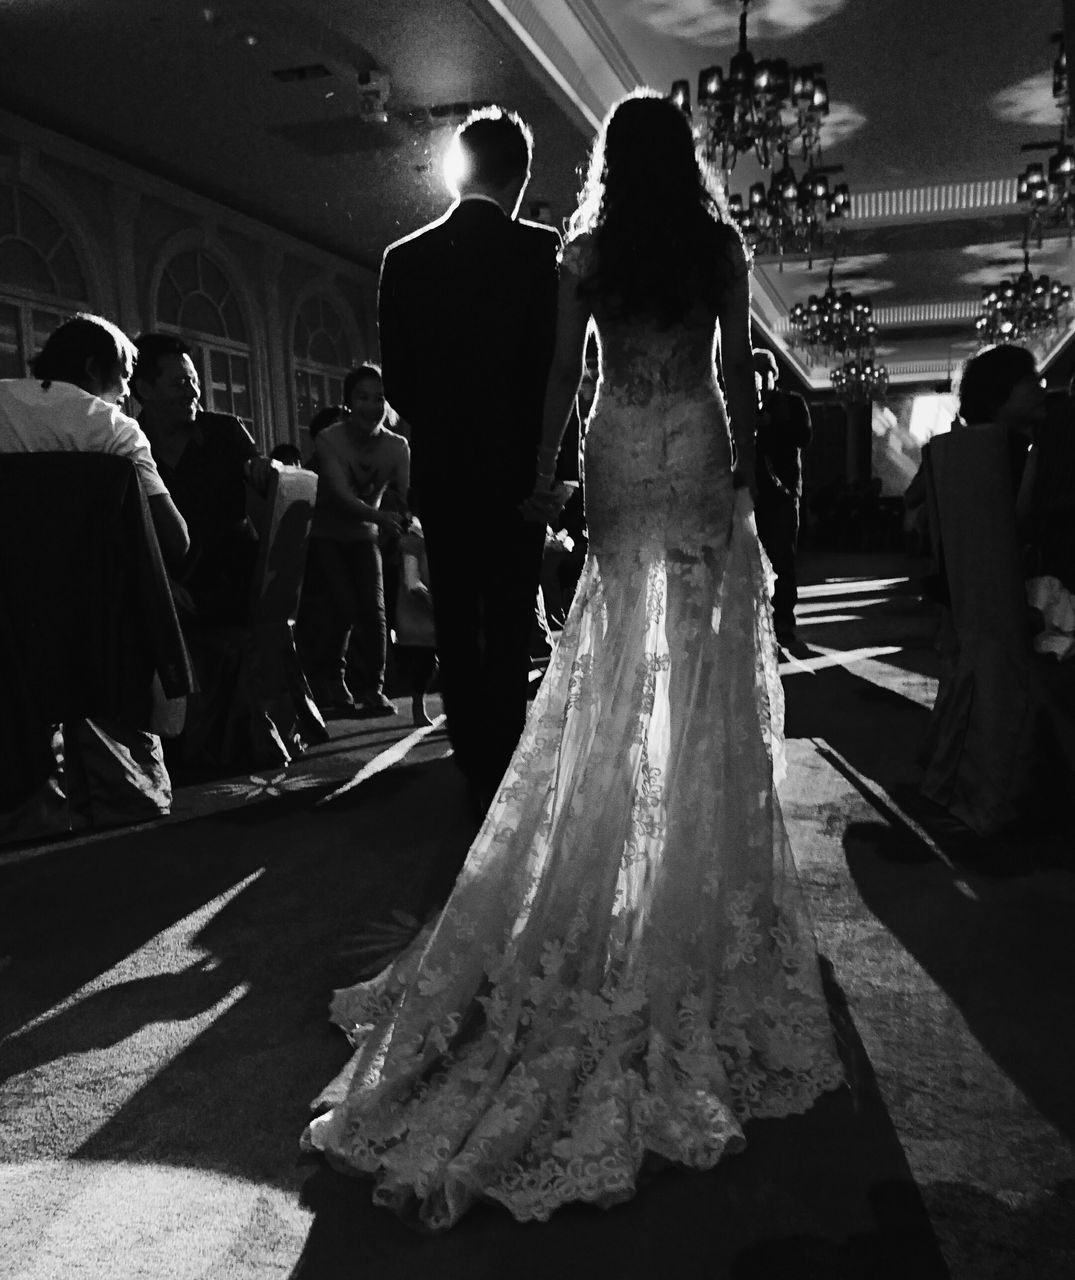 bride, celebration, wedding, women, life events, wedding dress, large group of people, real people, bridegroom, men, love, well-dressed, wedding ceremony, togetherness, groom, full length, ceremony, night, outdoors, adult, people